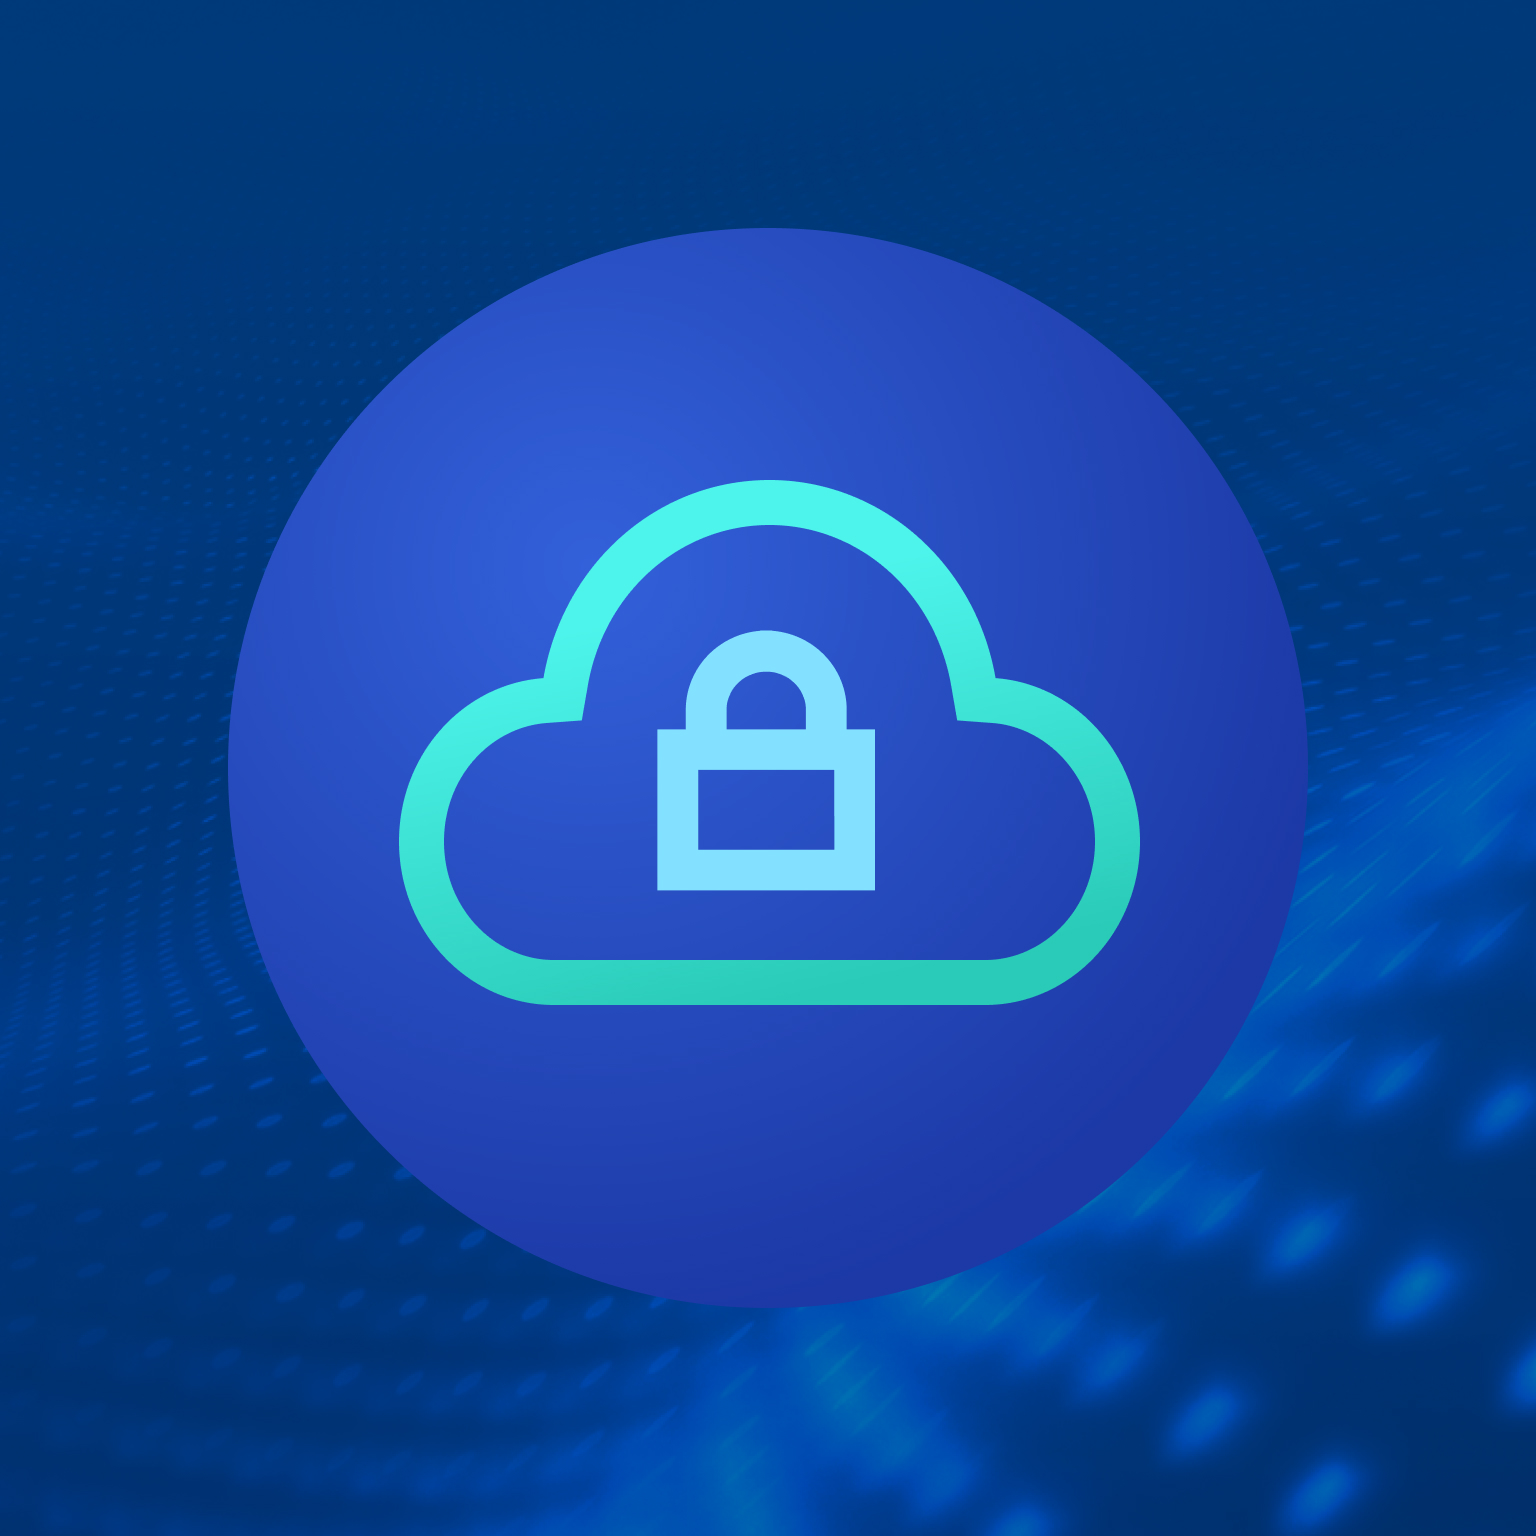 Secure Cloud Processing - Enveil's Never Decrypt security posture allows you to process your most sensitive workloads and data to the Cloud, extending the boundary of the enterprise's trusted compute.Users can securely operate on both encrypted and unencrypted data in the Cloud, on prem, or anywhere in between.